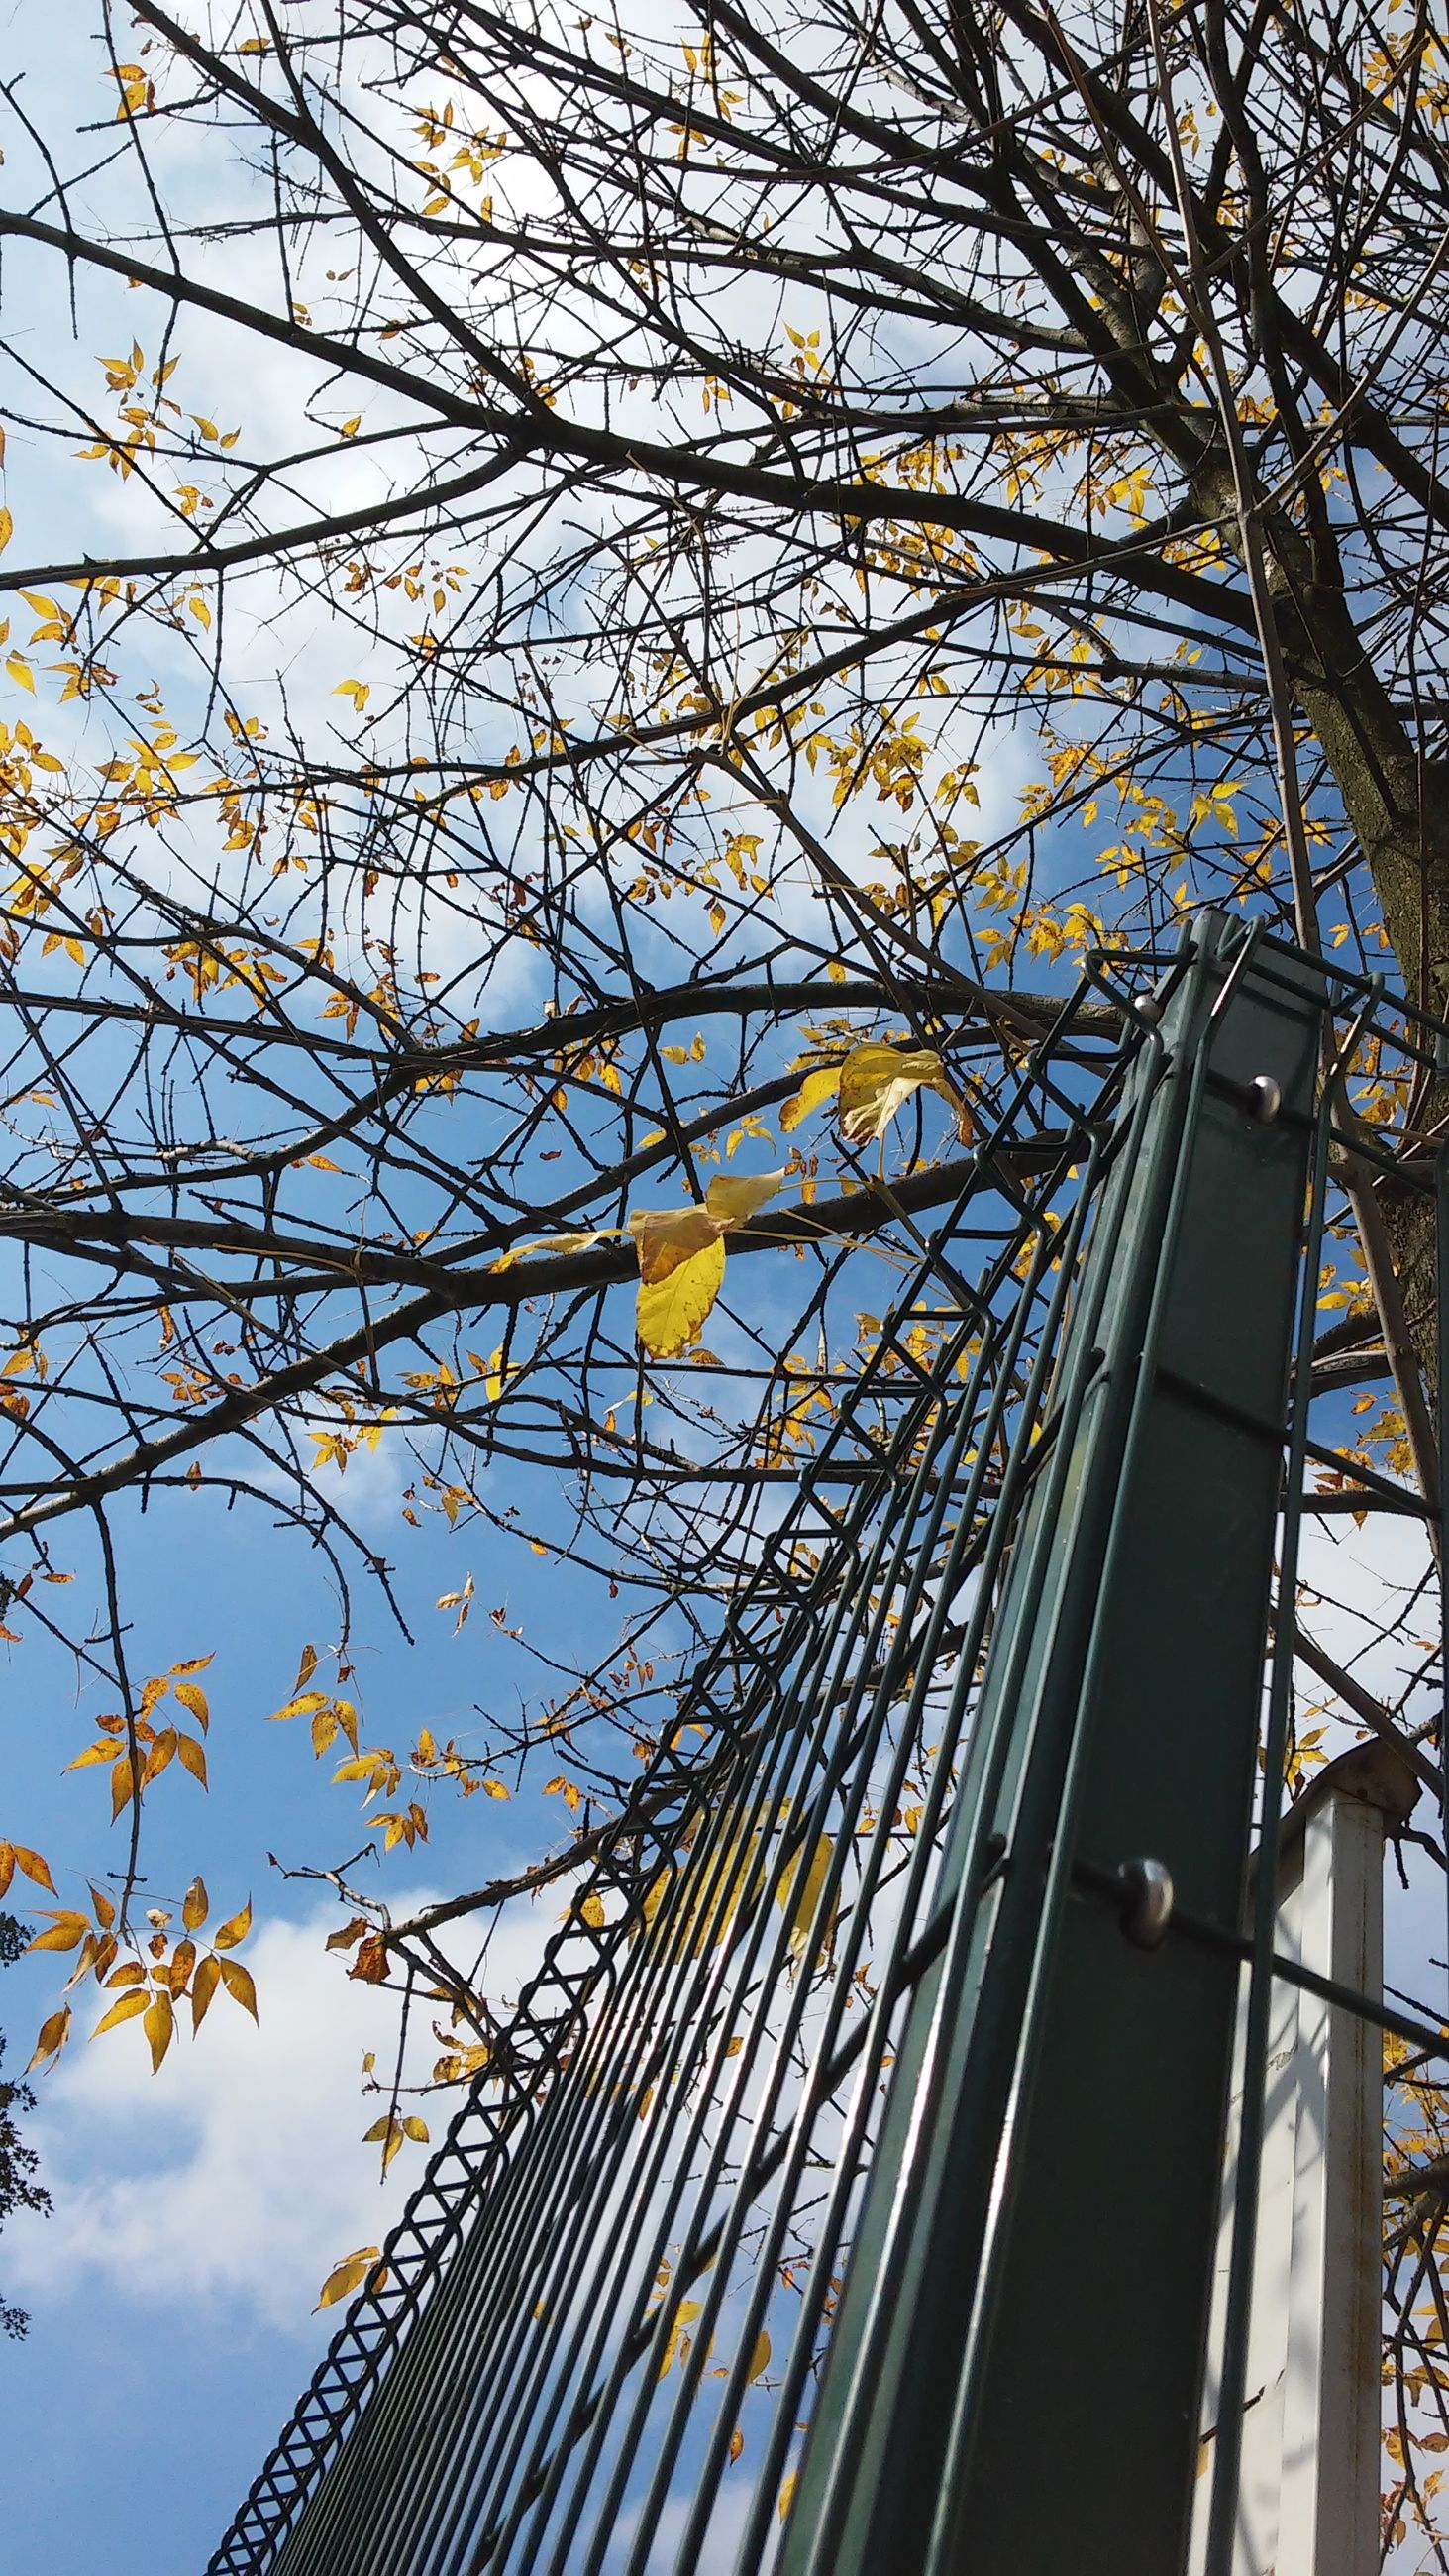 low angle view, sky, built structure, metal, tree, architecture, blue, branch, day, cloud - sky, protection, connection, yellow, outdoors, no people, metallic, pattern, cloud, chainlink fence, safety